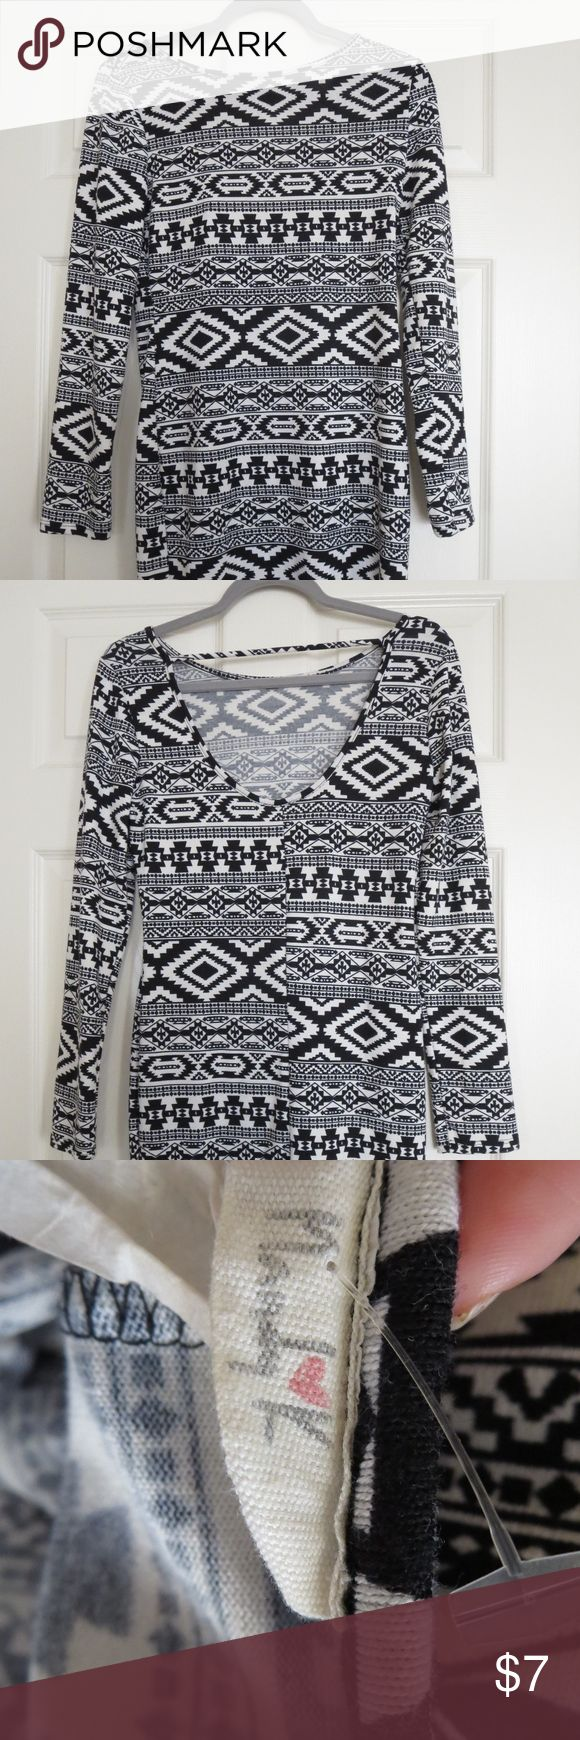 Long-sleeve Aztec Bodycon Dress Super comfortable long-sleeved bodycon dress- perfect for fall/winter when paired with tights and boots. Unsure of exact size but at 5'2 and 130 pounds it fits like a medium on me. Dresses Mini